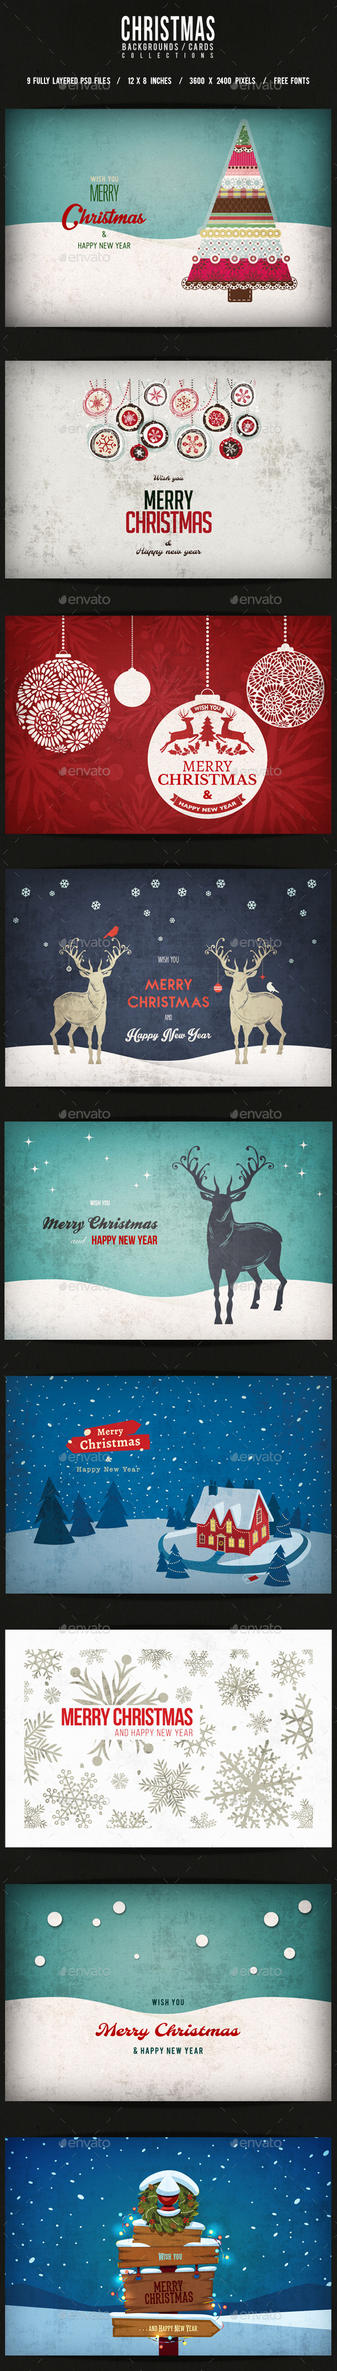 Christmas Backgrounds/Cards Collection by elisamaggit